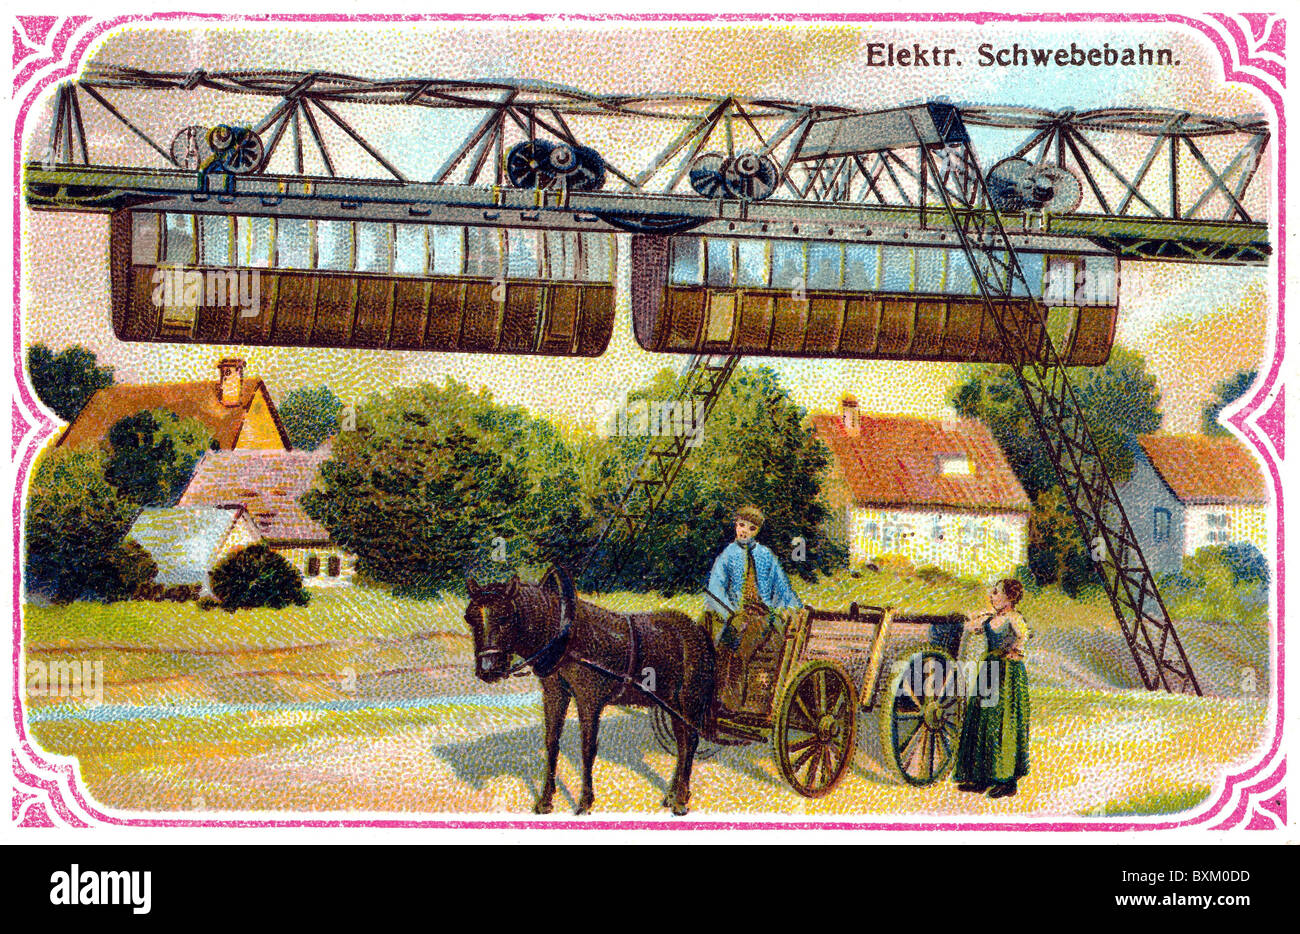 transport / transportation, railway, train, Wuppertal suspension railway, above the river Wupper, opened in 1901, - Stock Image